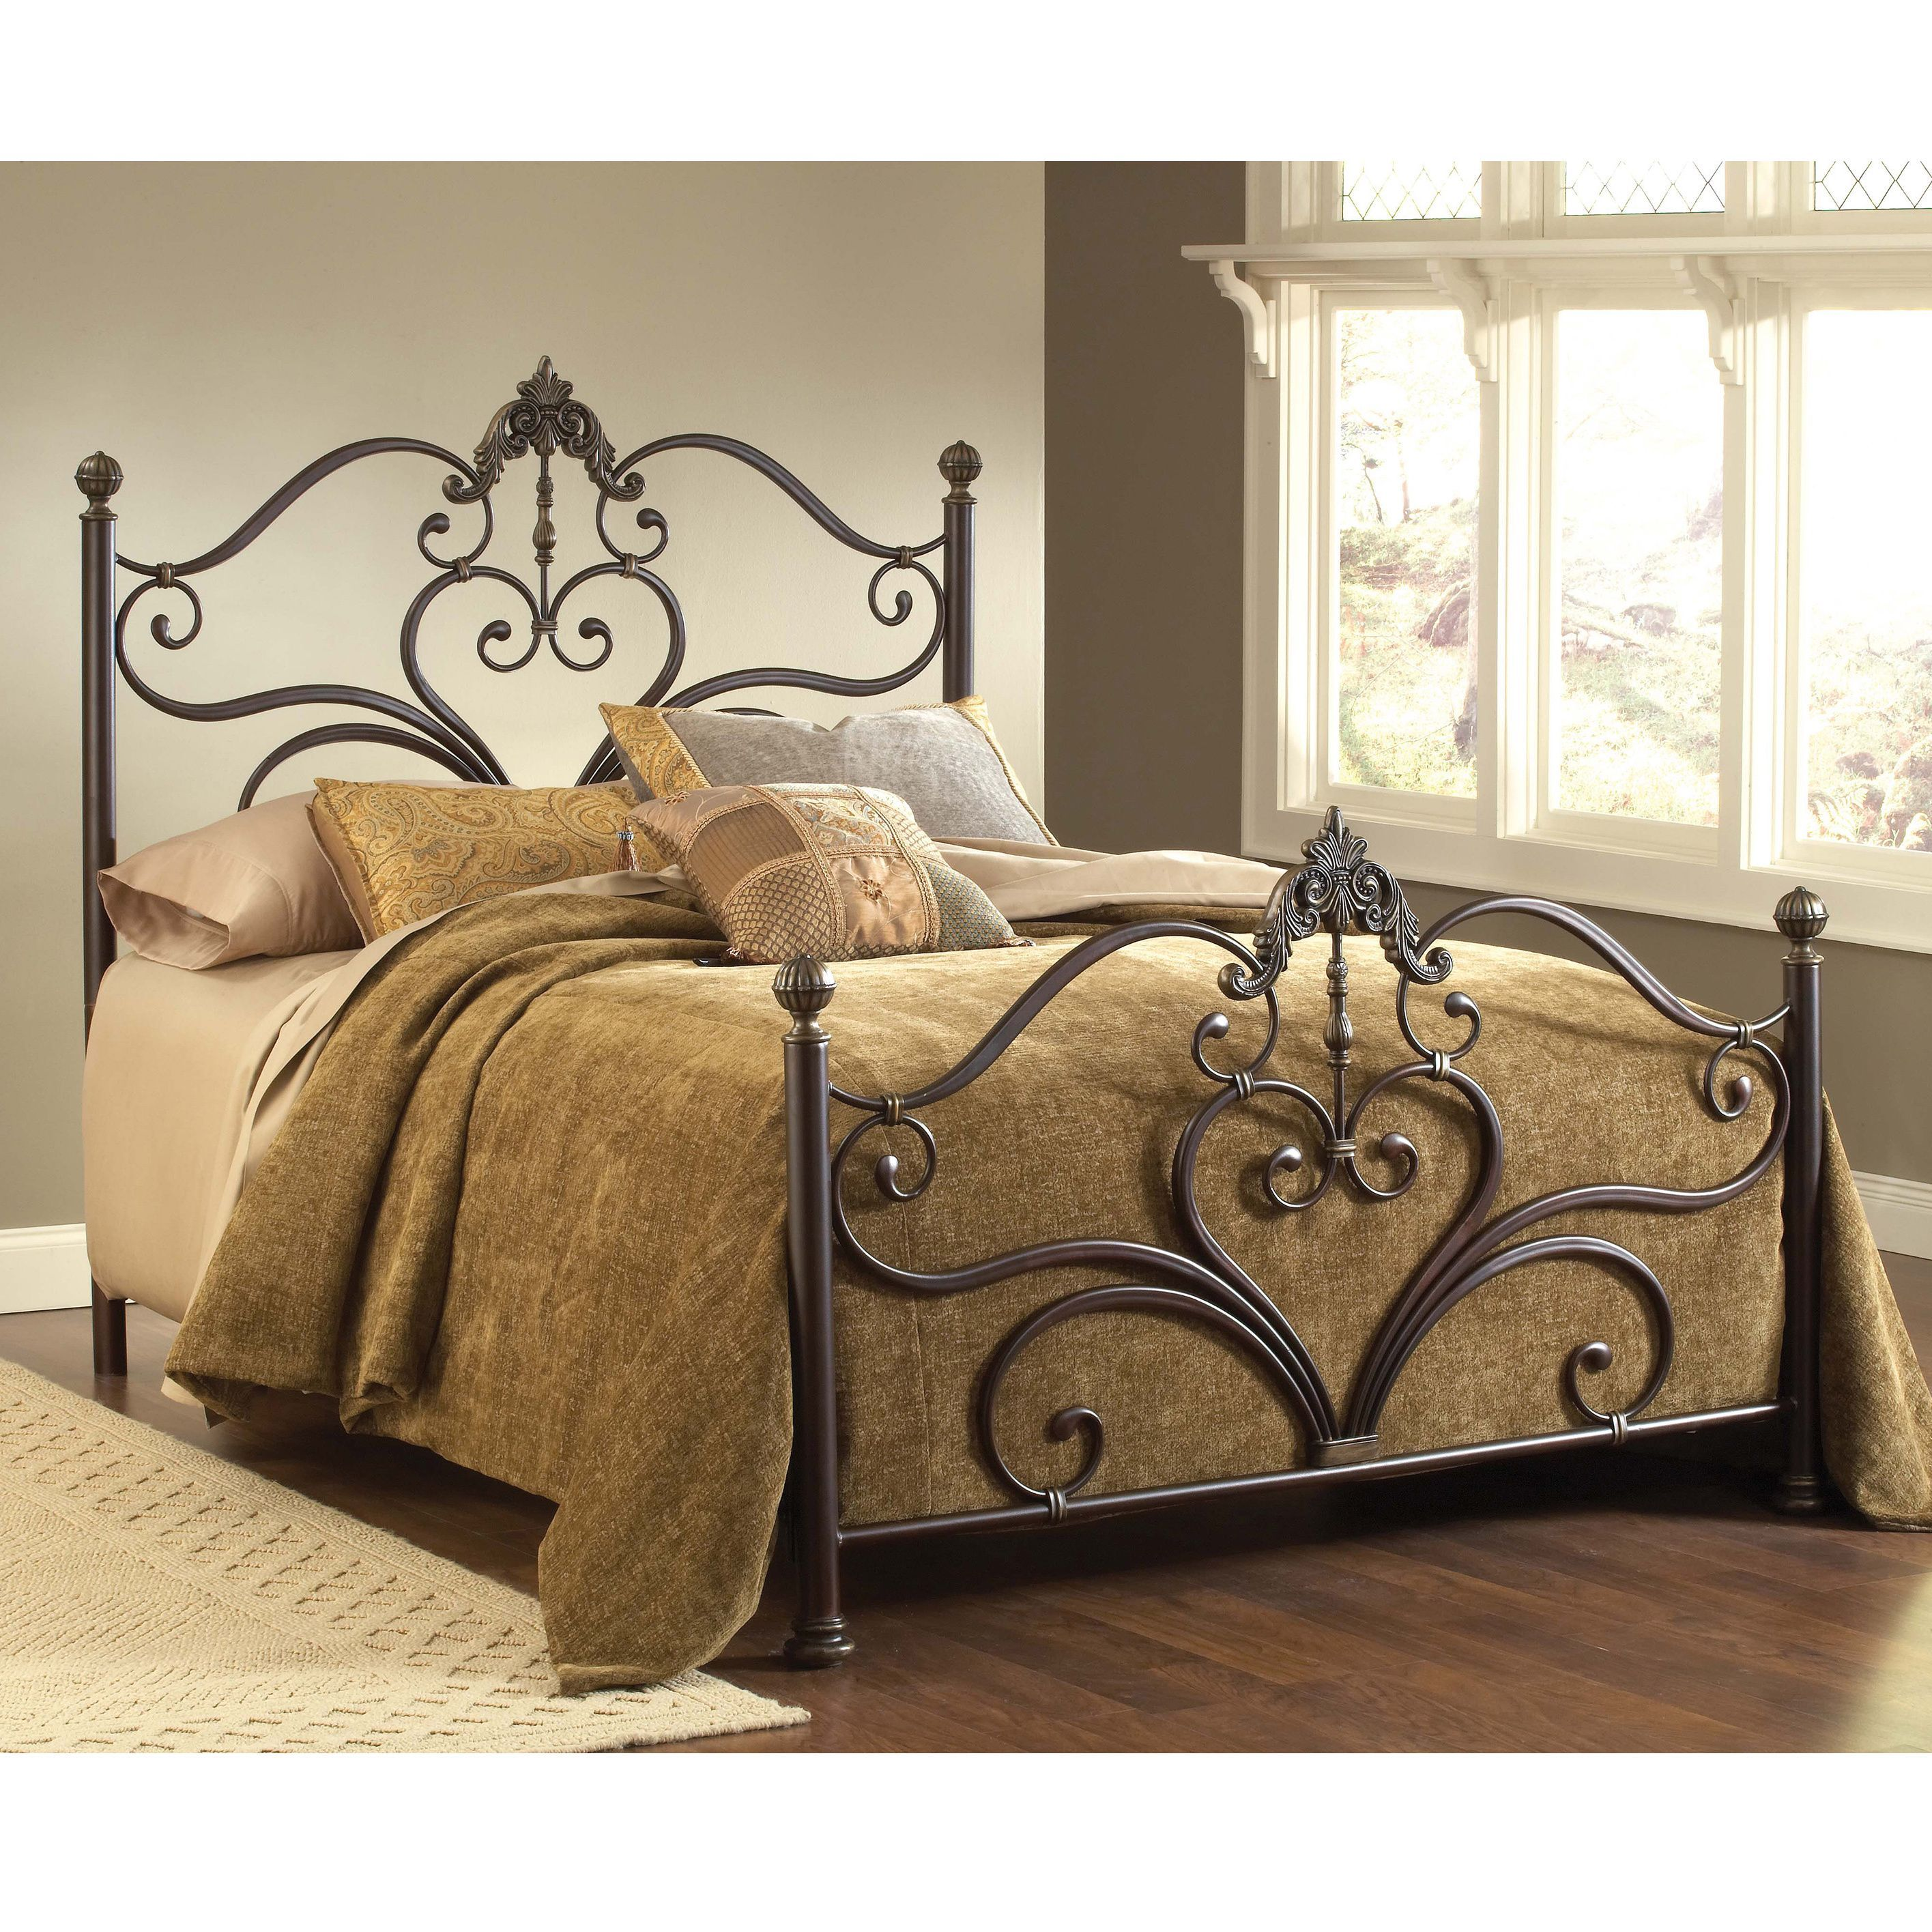 Newton Antique Brown Bed Set - 16404367 - Overstock.com Shopping ...